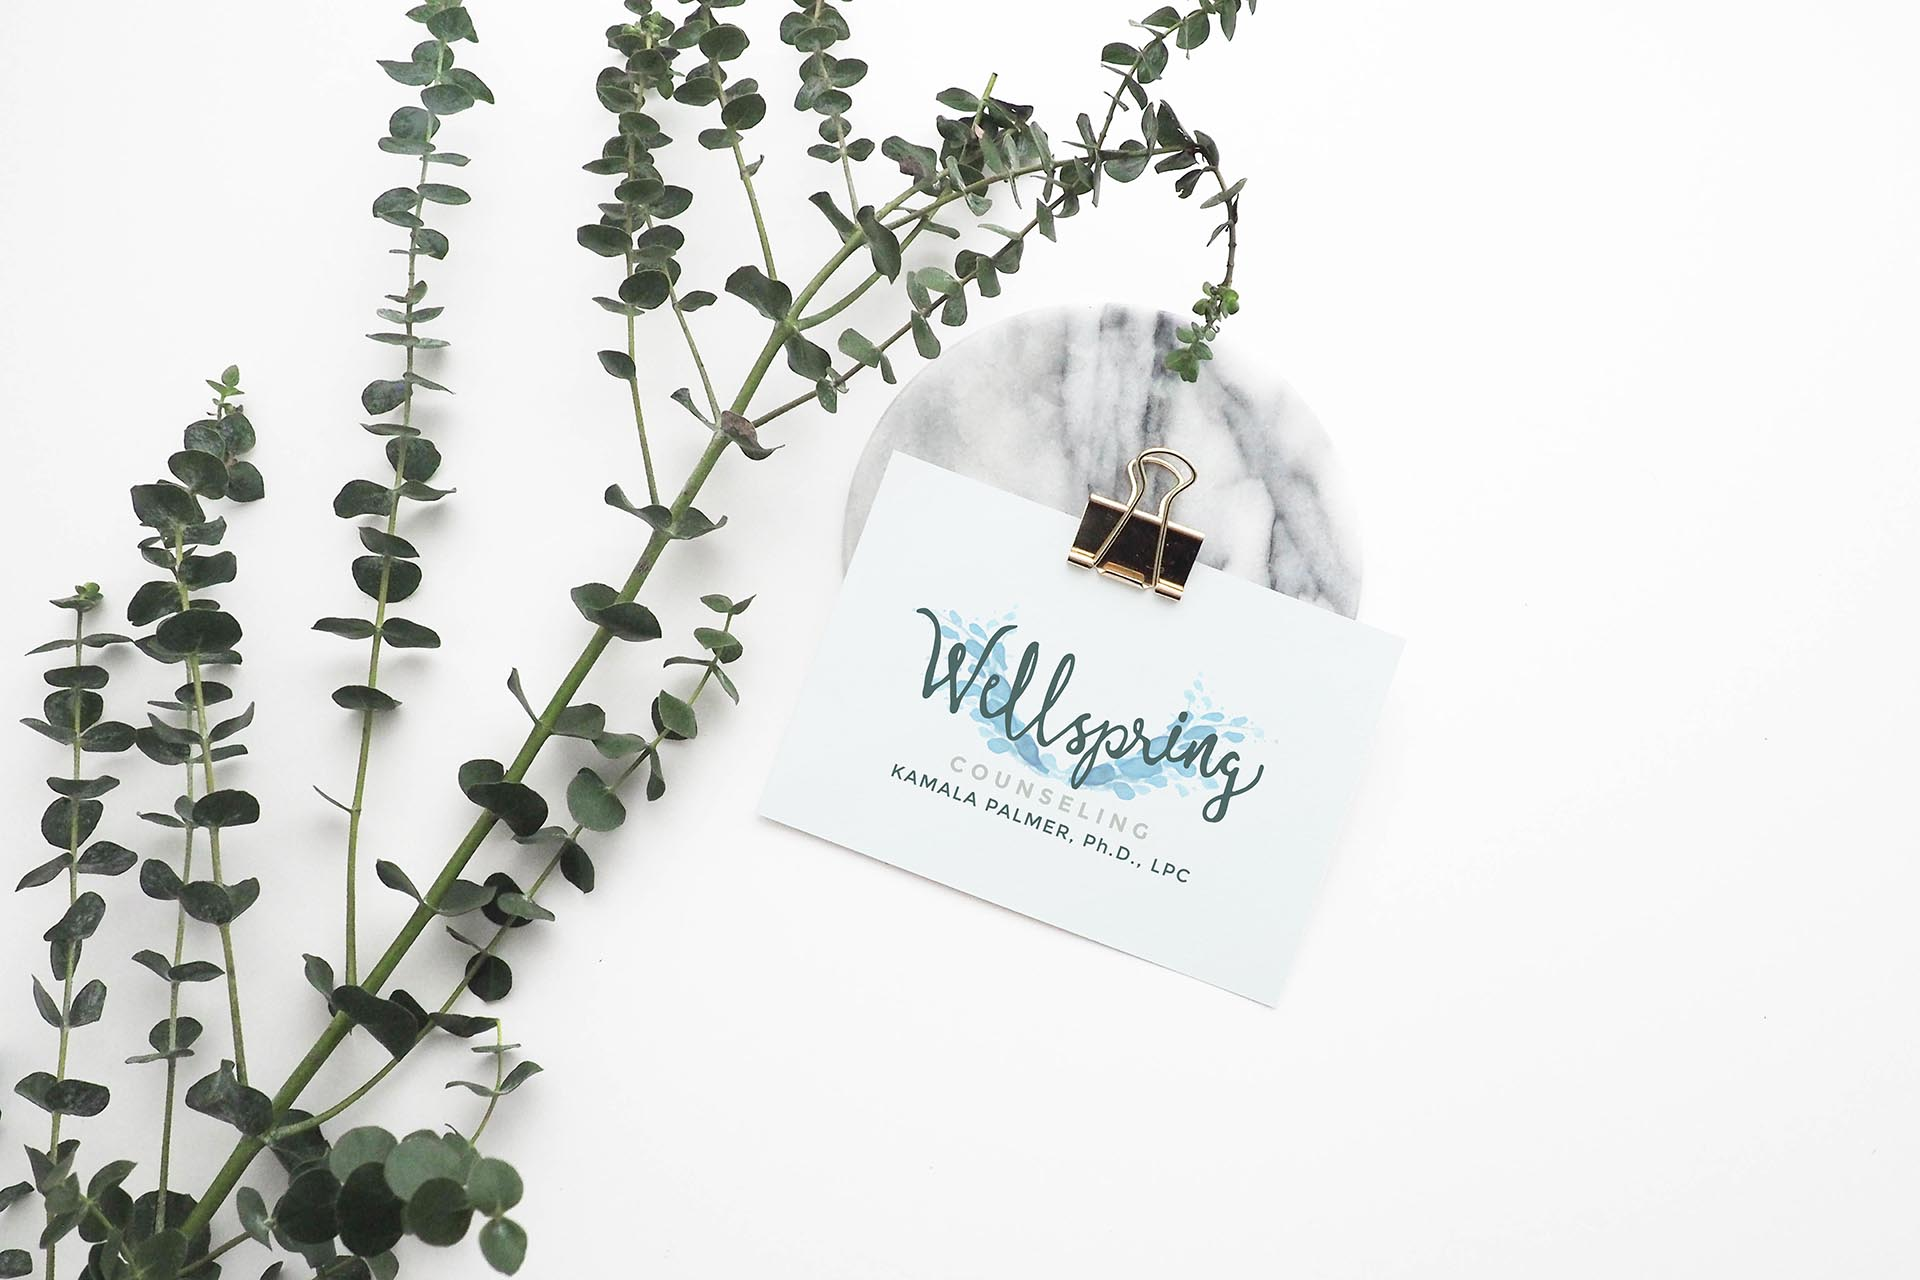 logo design for Wellspring Counseling shown on a small white card with a eucalyptus branch on a white background